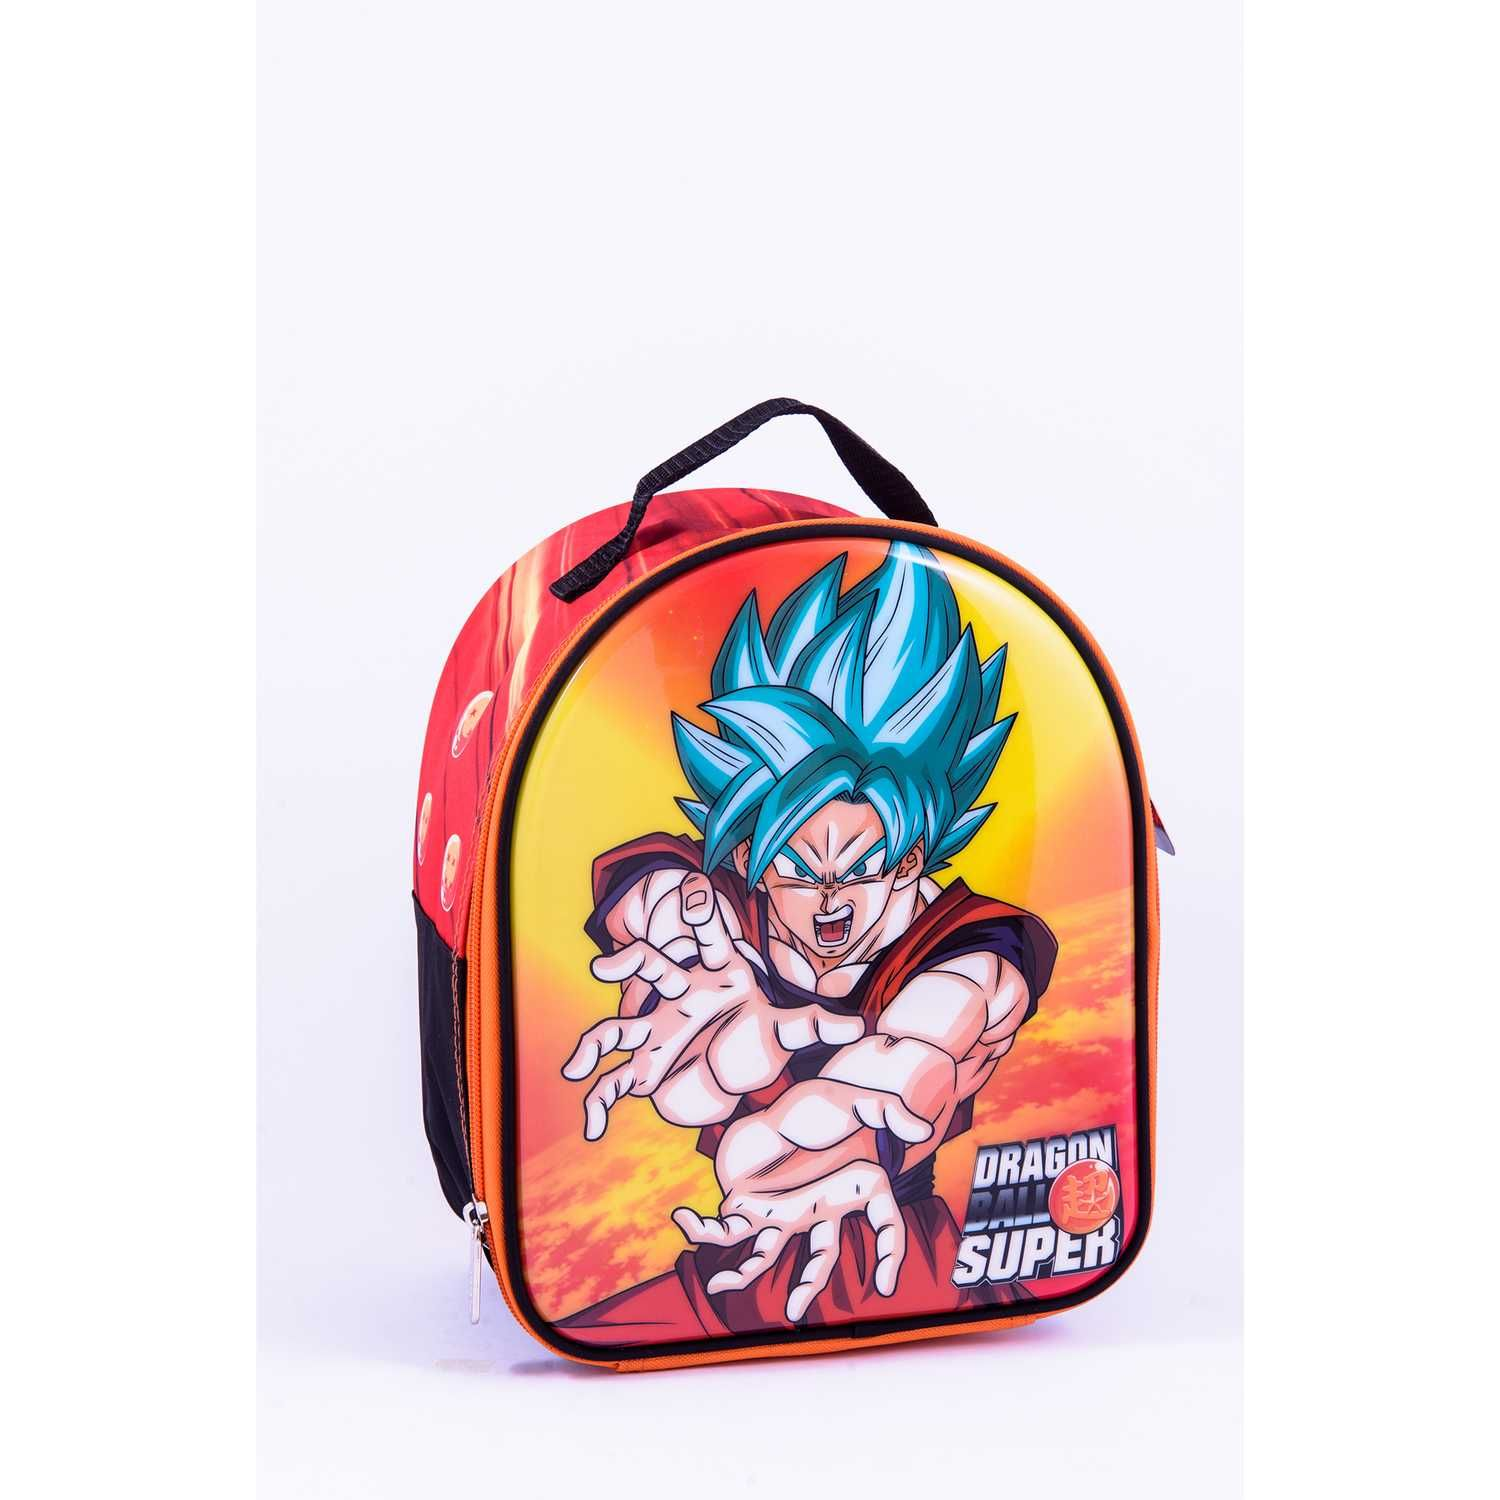 DRAGON BALL 9 SCOOL DRAGON BALL LONCH STRONG DLX Amarillo Loncheras